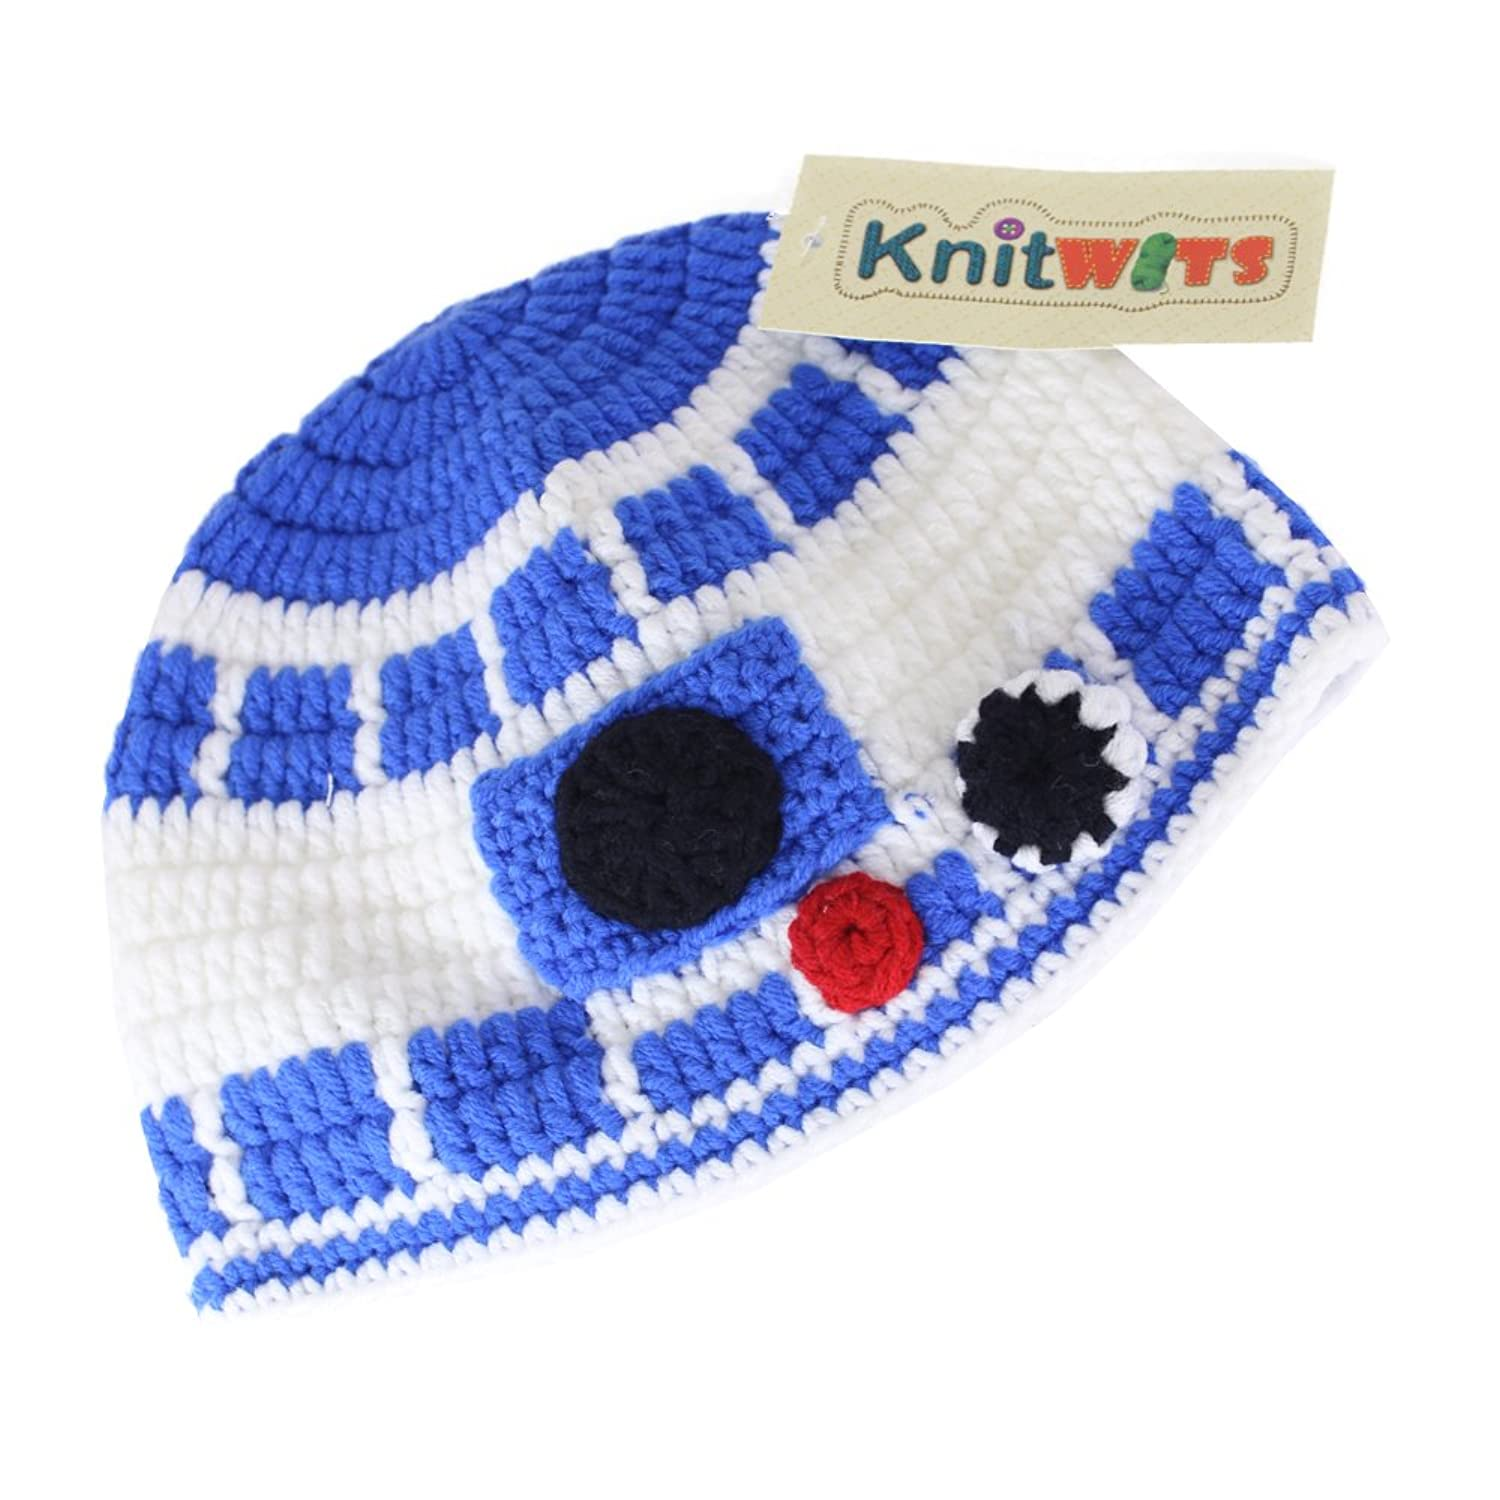 Amazon.com: Knitwits Star Wars R2D2 Crochet Beanie (Large): Clothing